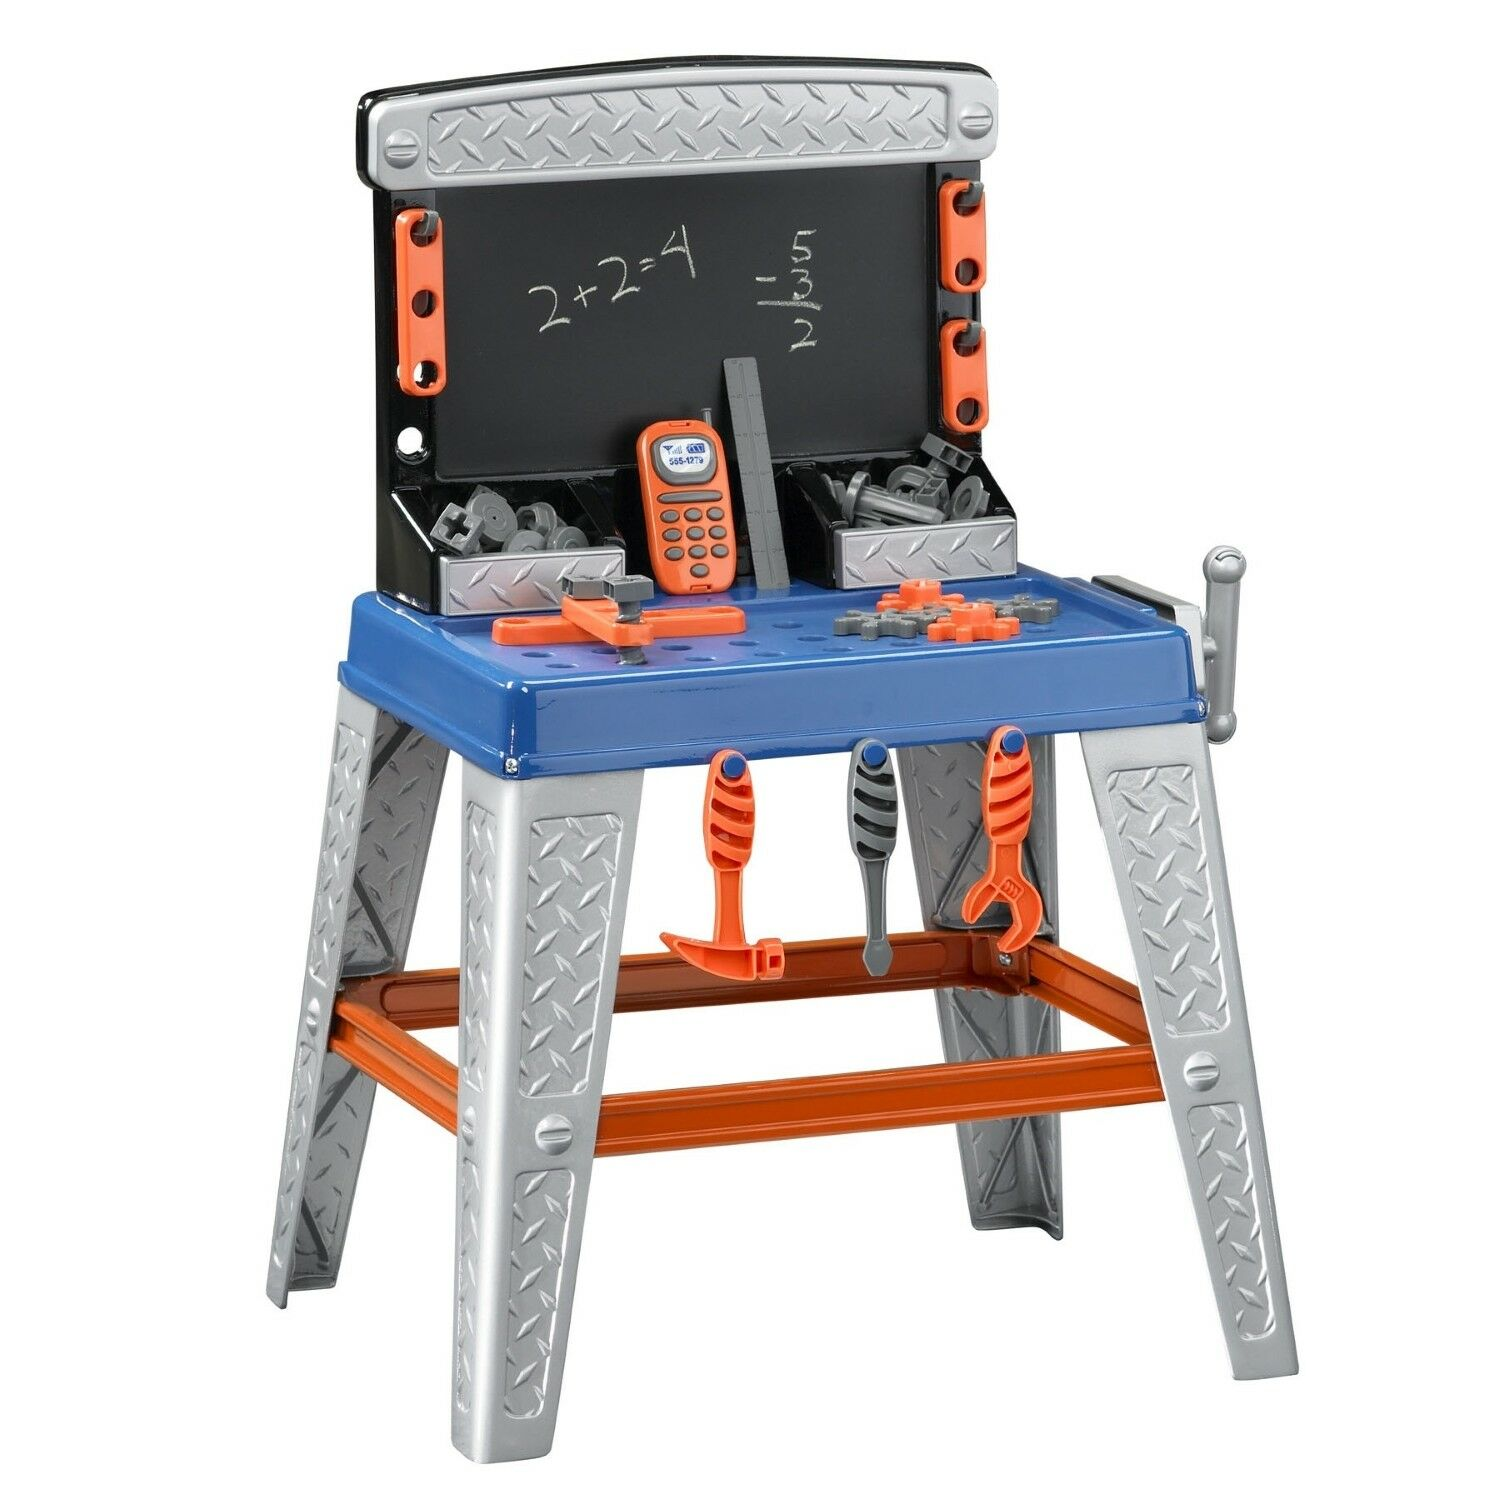 My Very Own Tool Bench Kids Kids Kids Learning Toys Mechanic Tool Play Set Playing Games 93e737